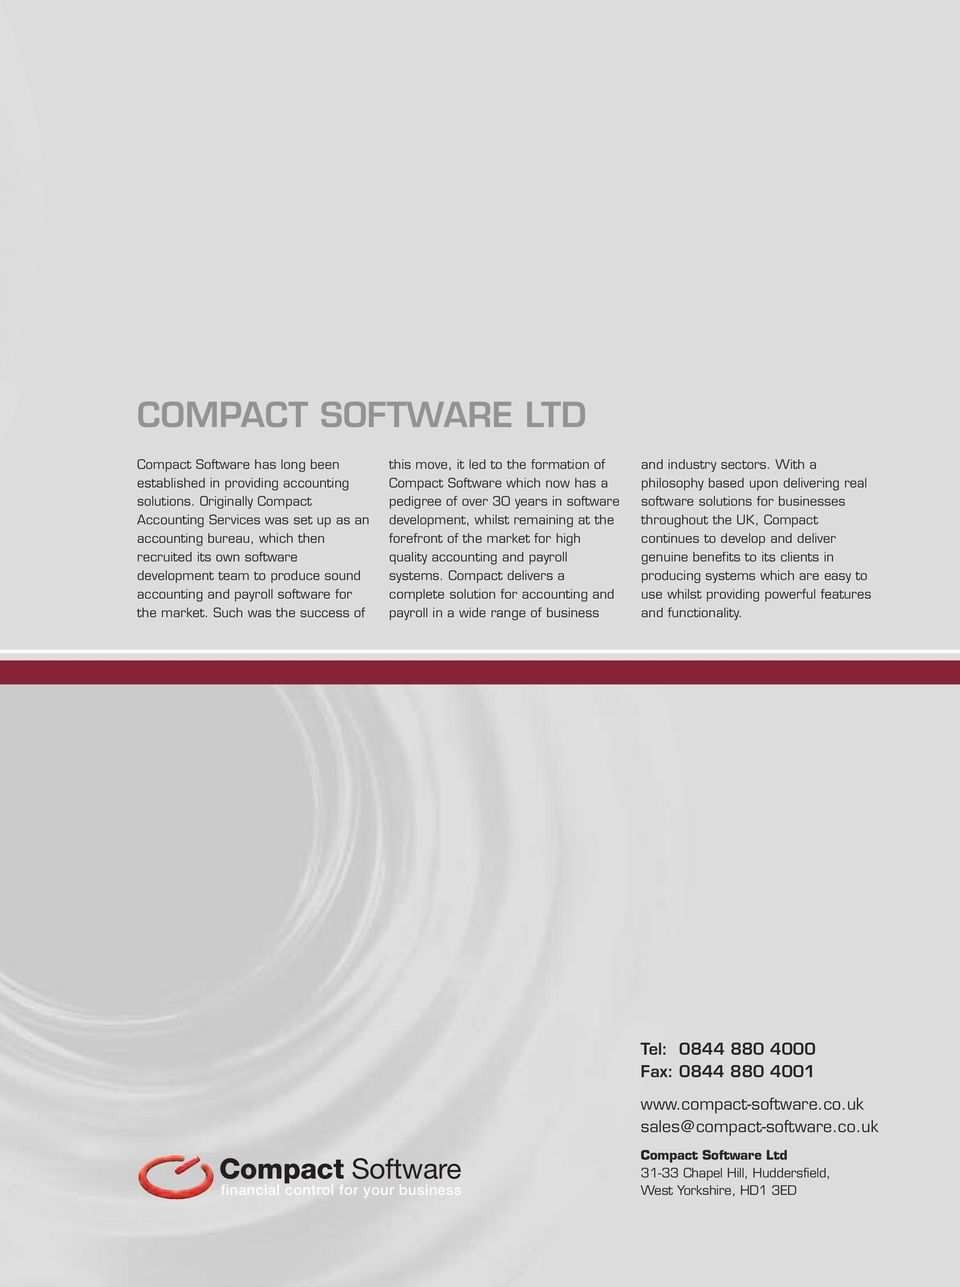 Such was the success of this move, it led to the formation of Compact Software which now has a pedigree of over 30 years in software development, whilst remaining at the forefront of the market for